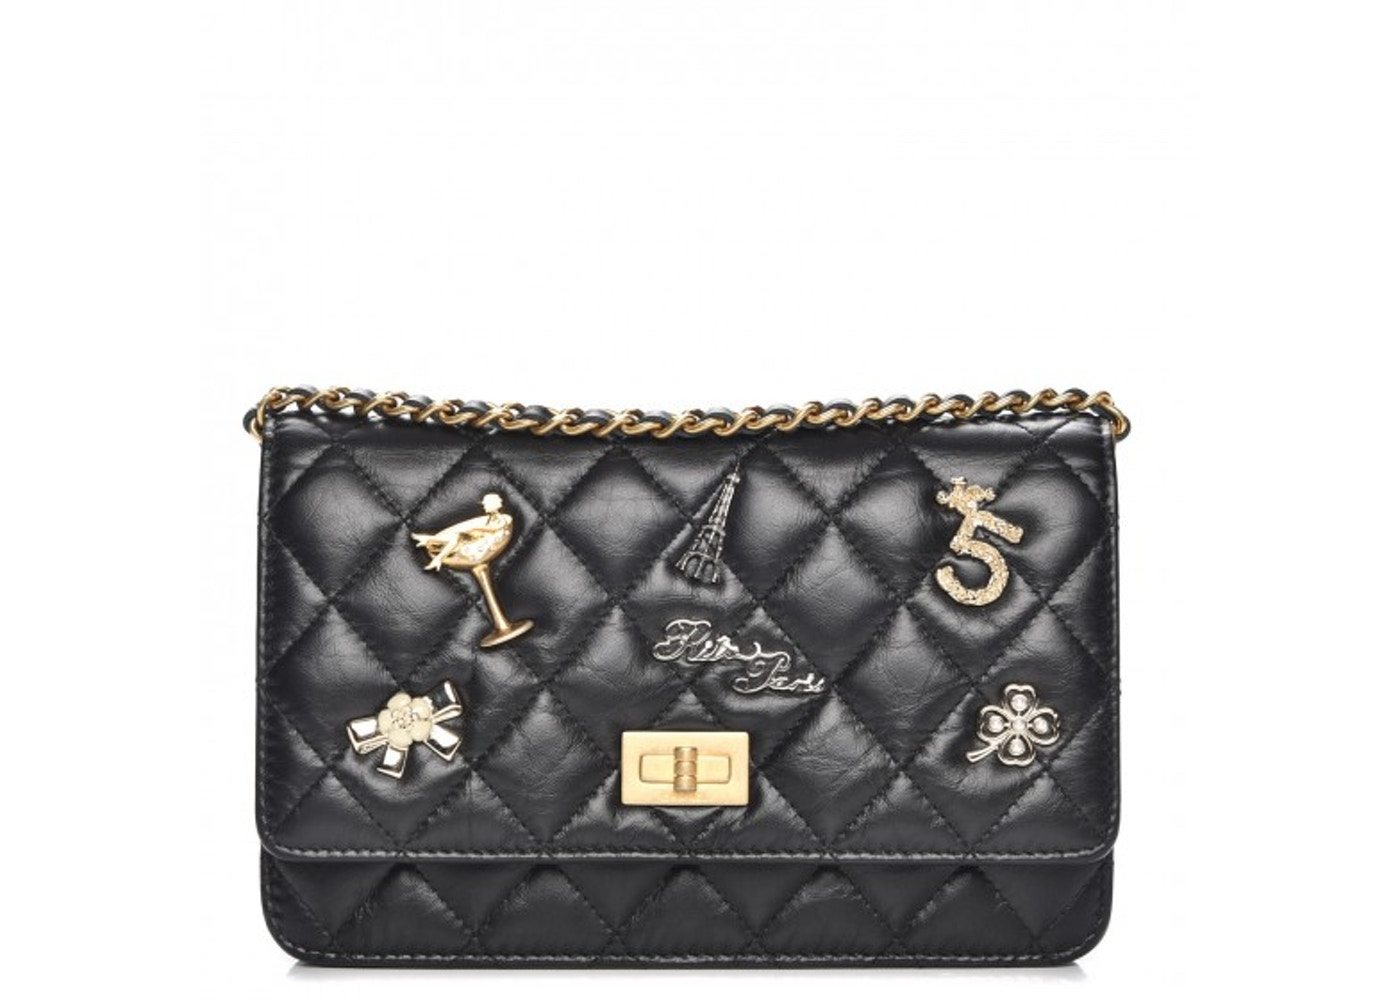 Chanel Reissue 2 55 Wallet On Chain